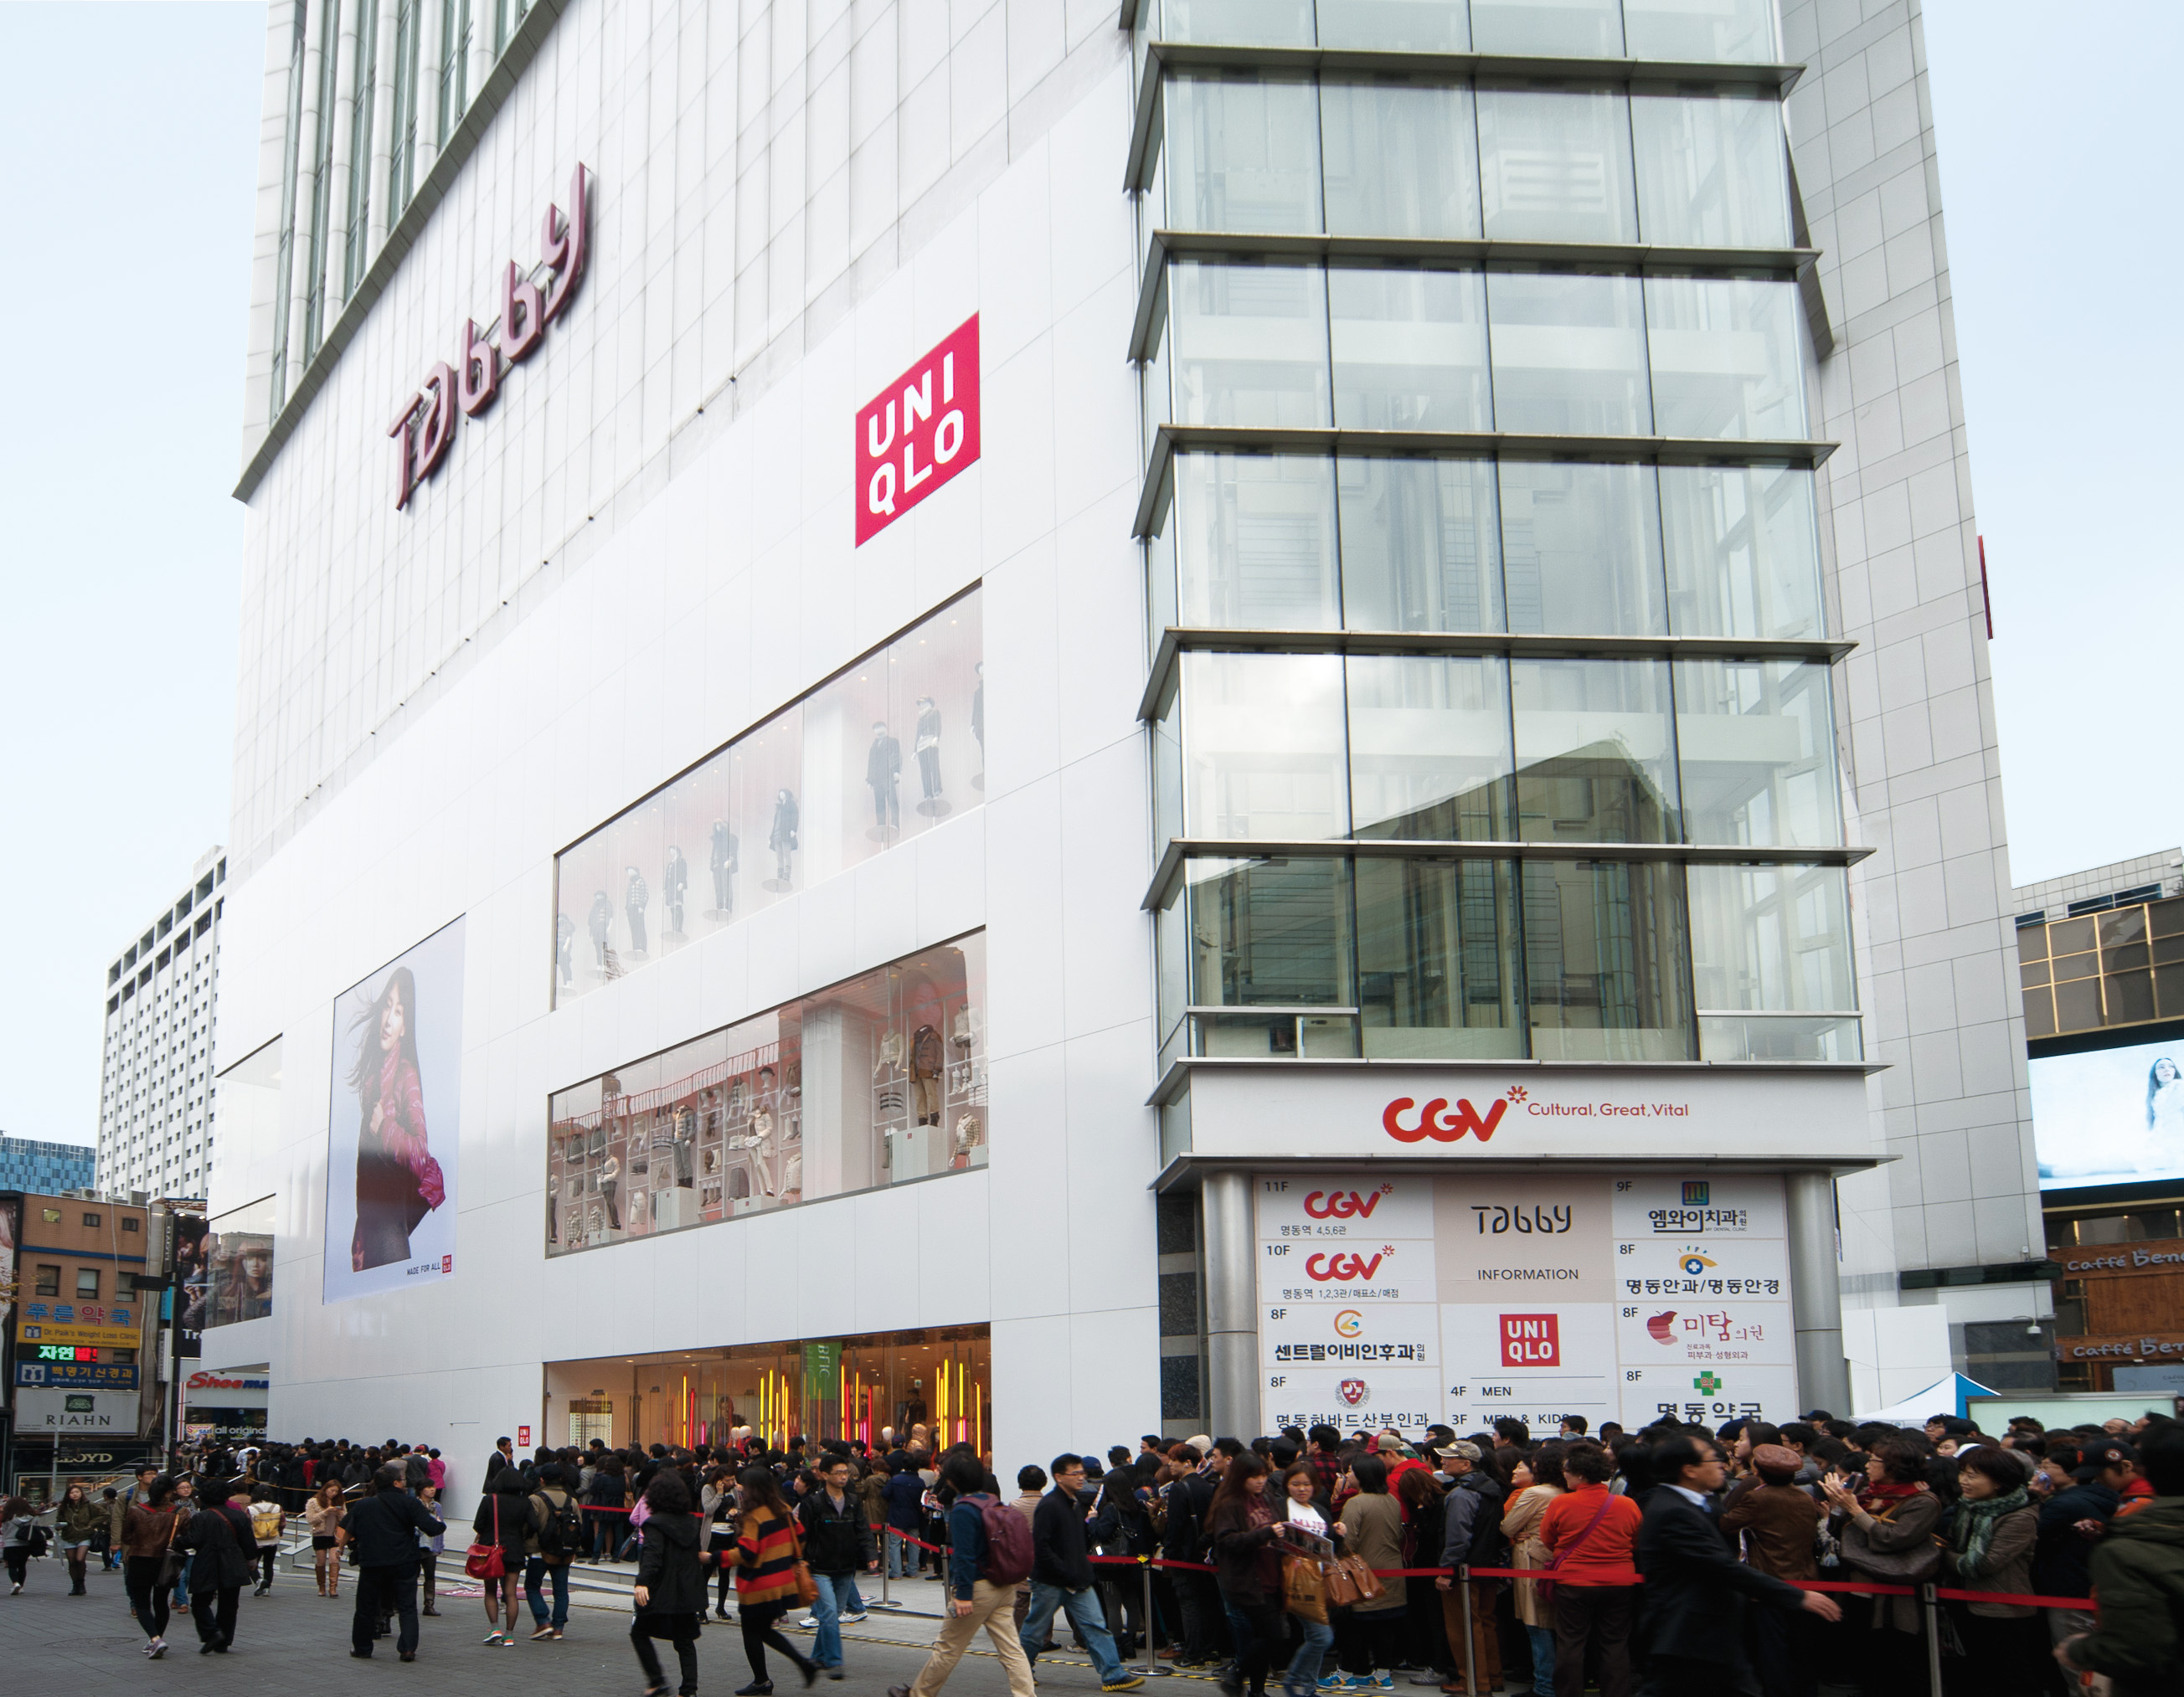 UNIQLO on Saturday opens its first retail location in Indonesia, the UNIQLO Lotte Shopping Avenue Store. The megastore, one of the biggest in Southeast Asia, will.